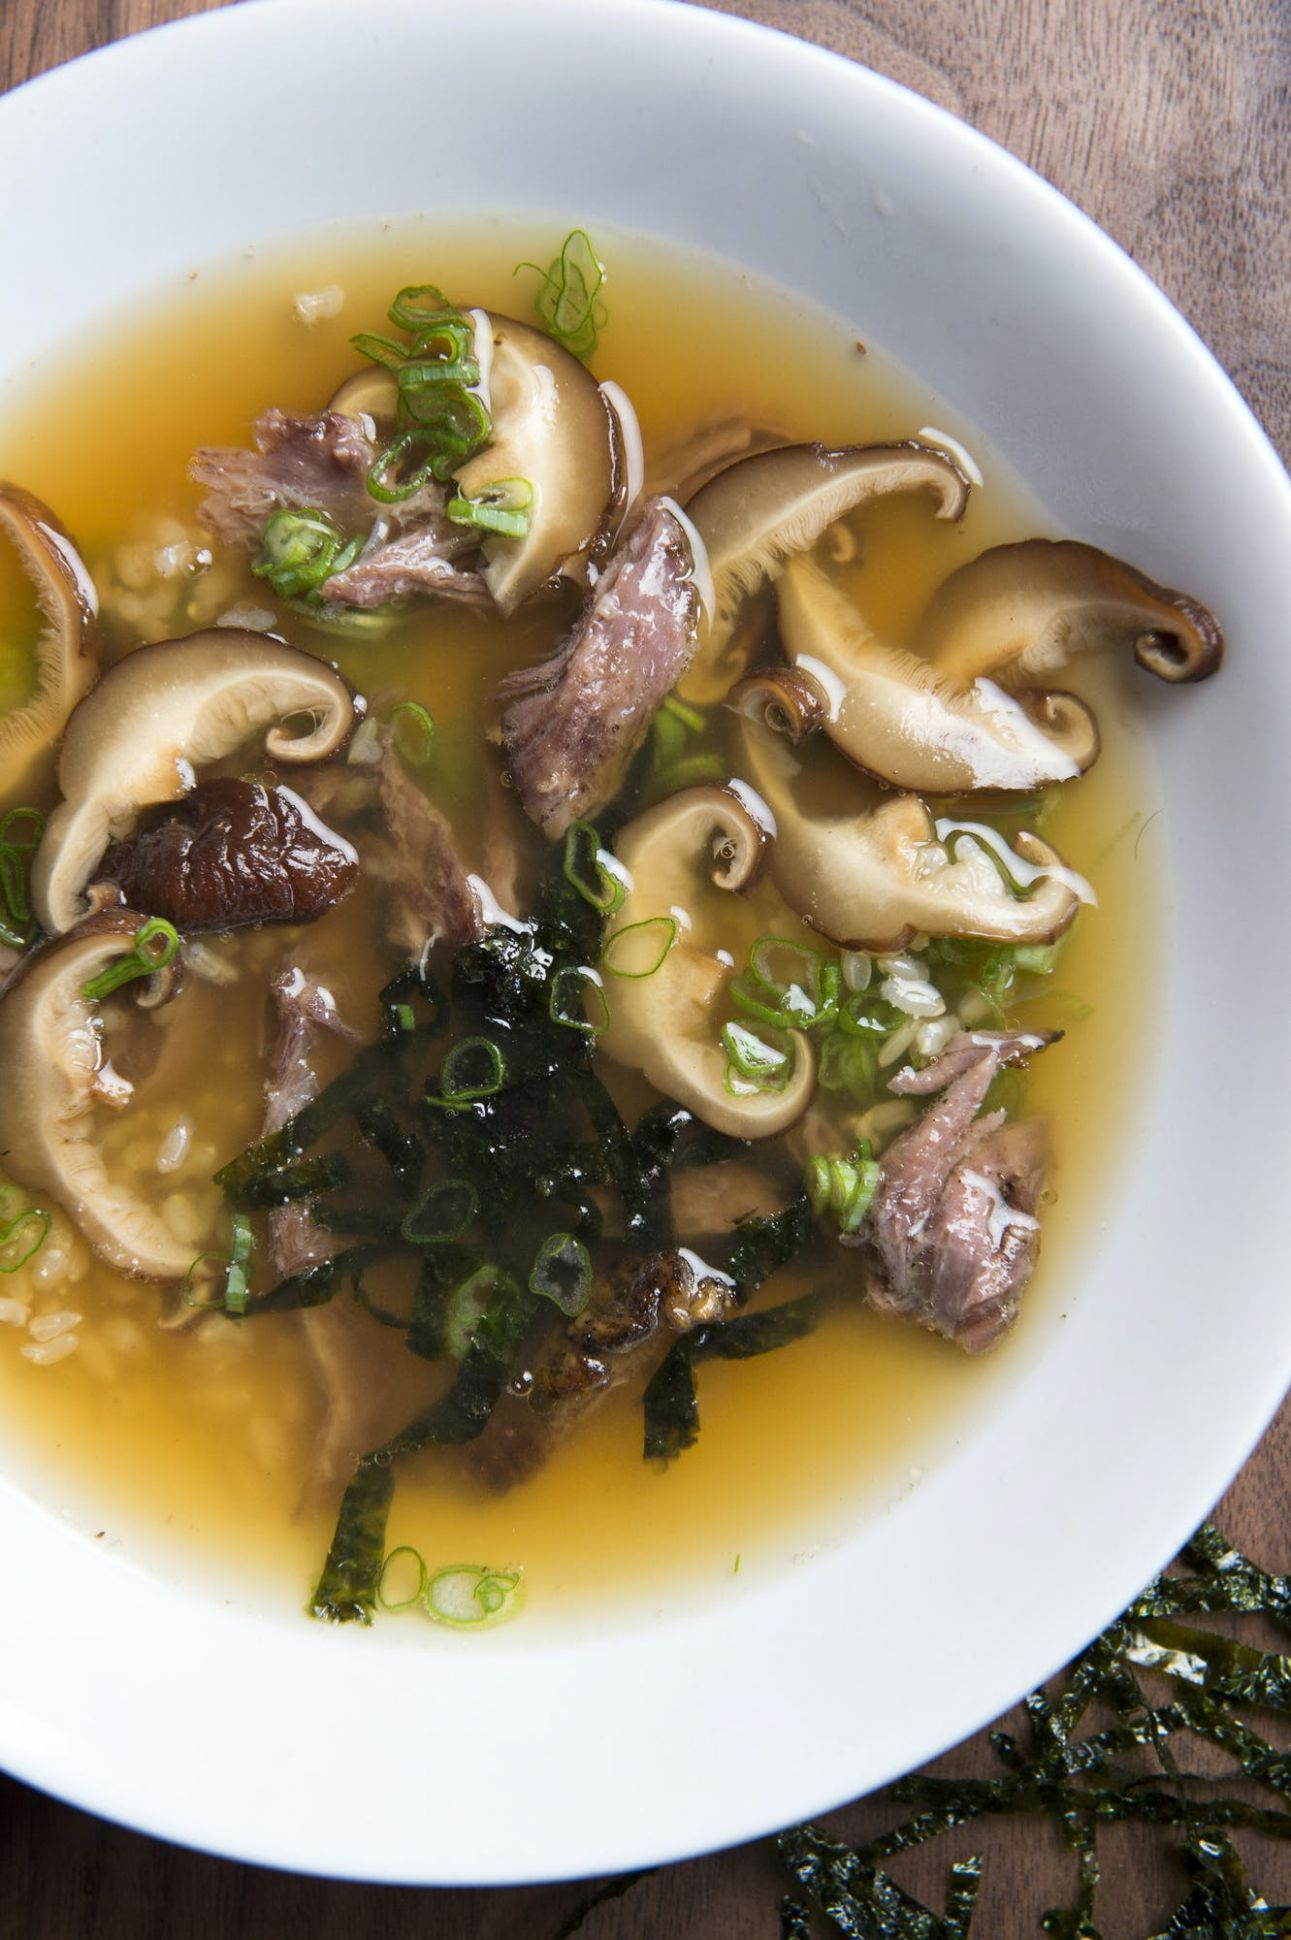 Recipes: Beef Bone Broth, Japanese Beef and Rice Soup | Star Tribune - Soup Recipes Using Beef Bone Broth